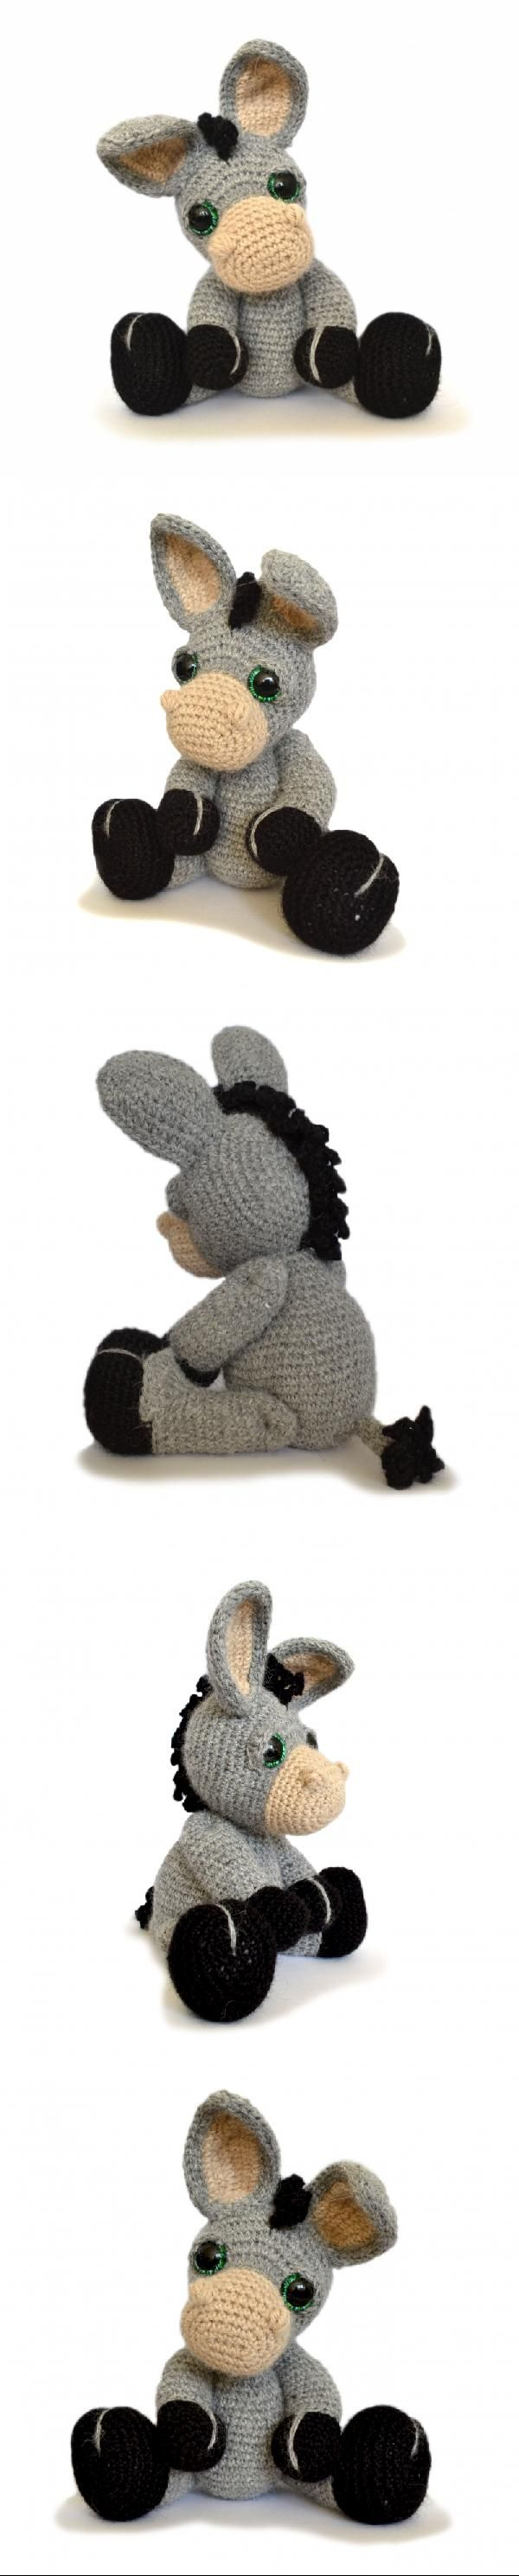 Dylan the Donkey amigurumi pattern by Patchwork Moose (Kate E ...